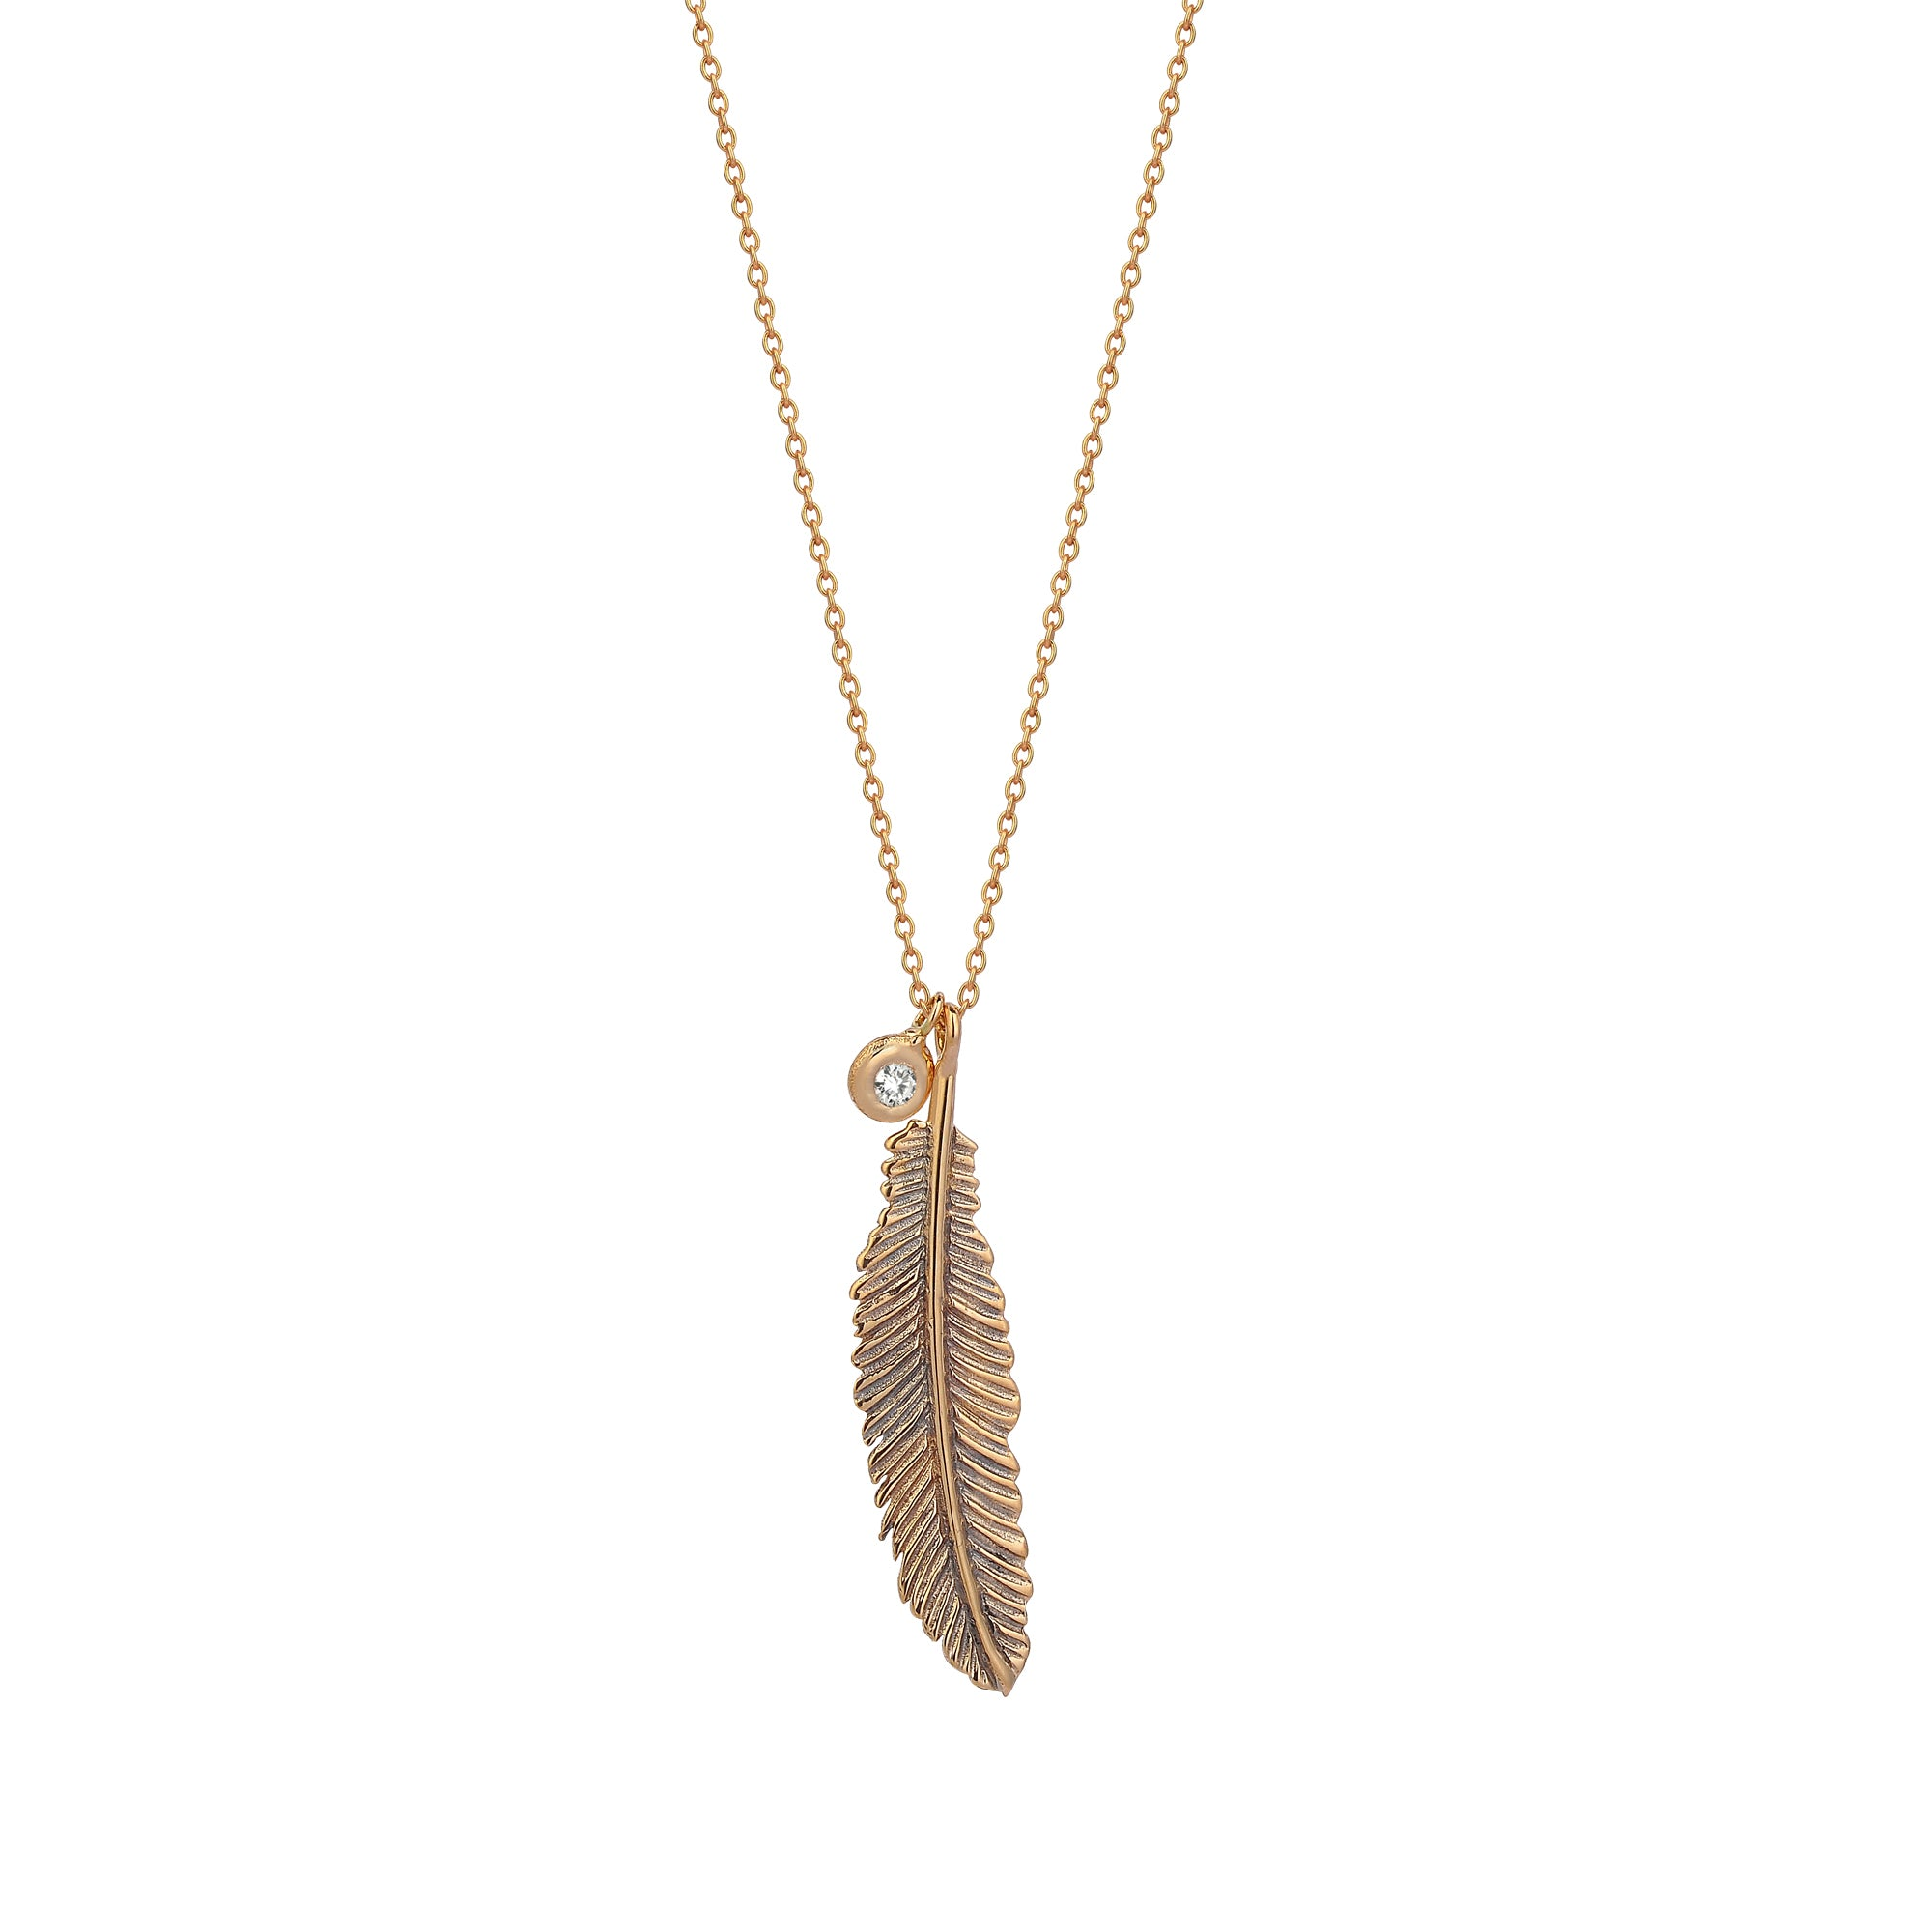 Raven Feather Necklace by Kismet for Broken English Jewelry